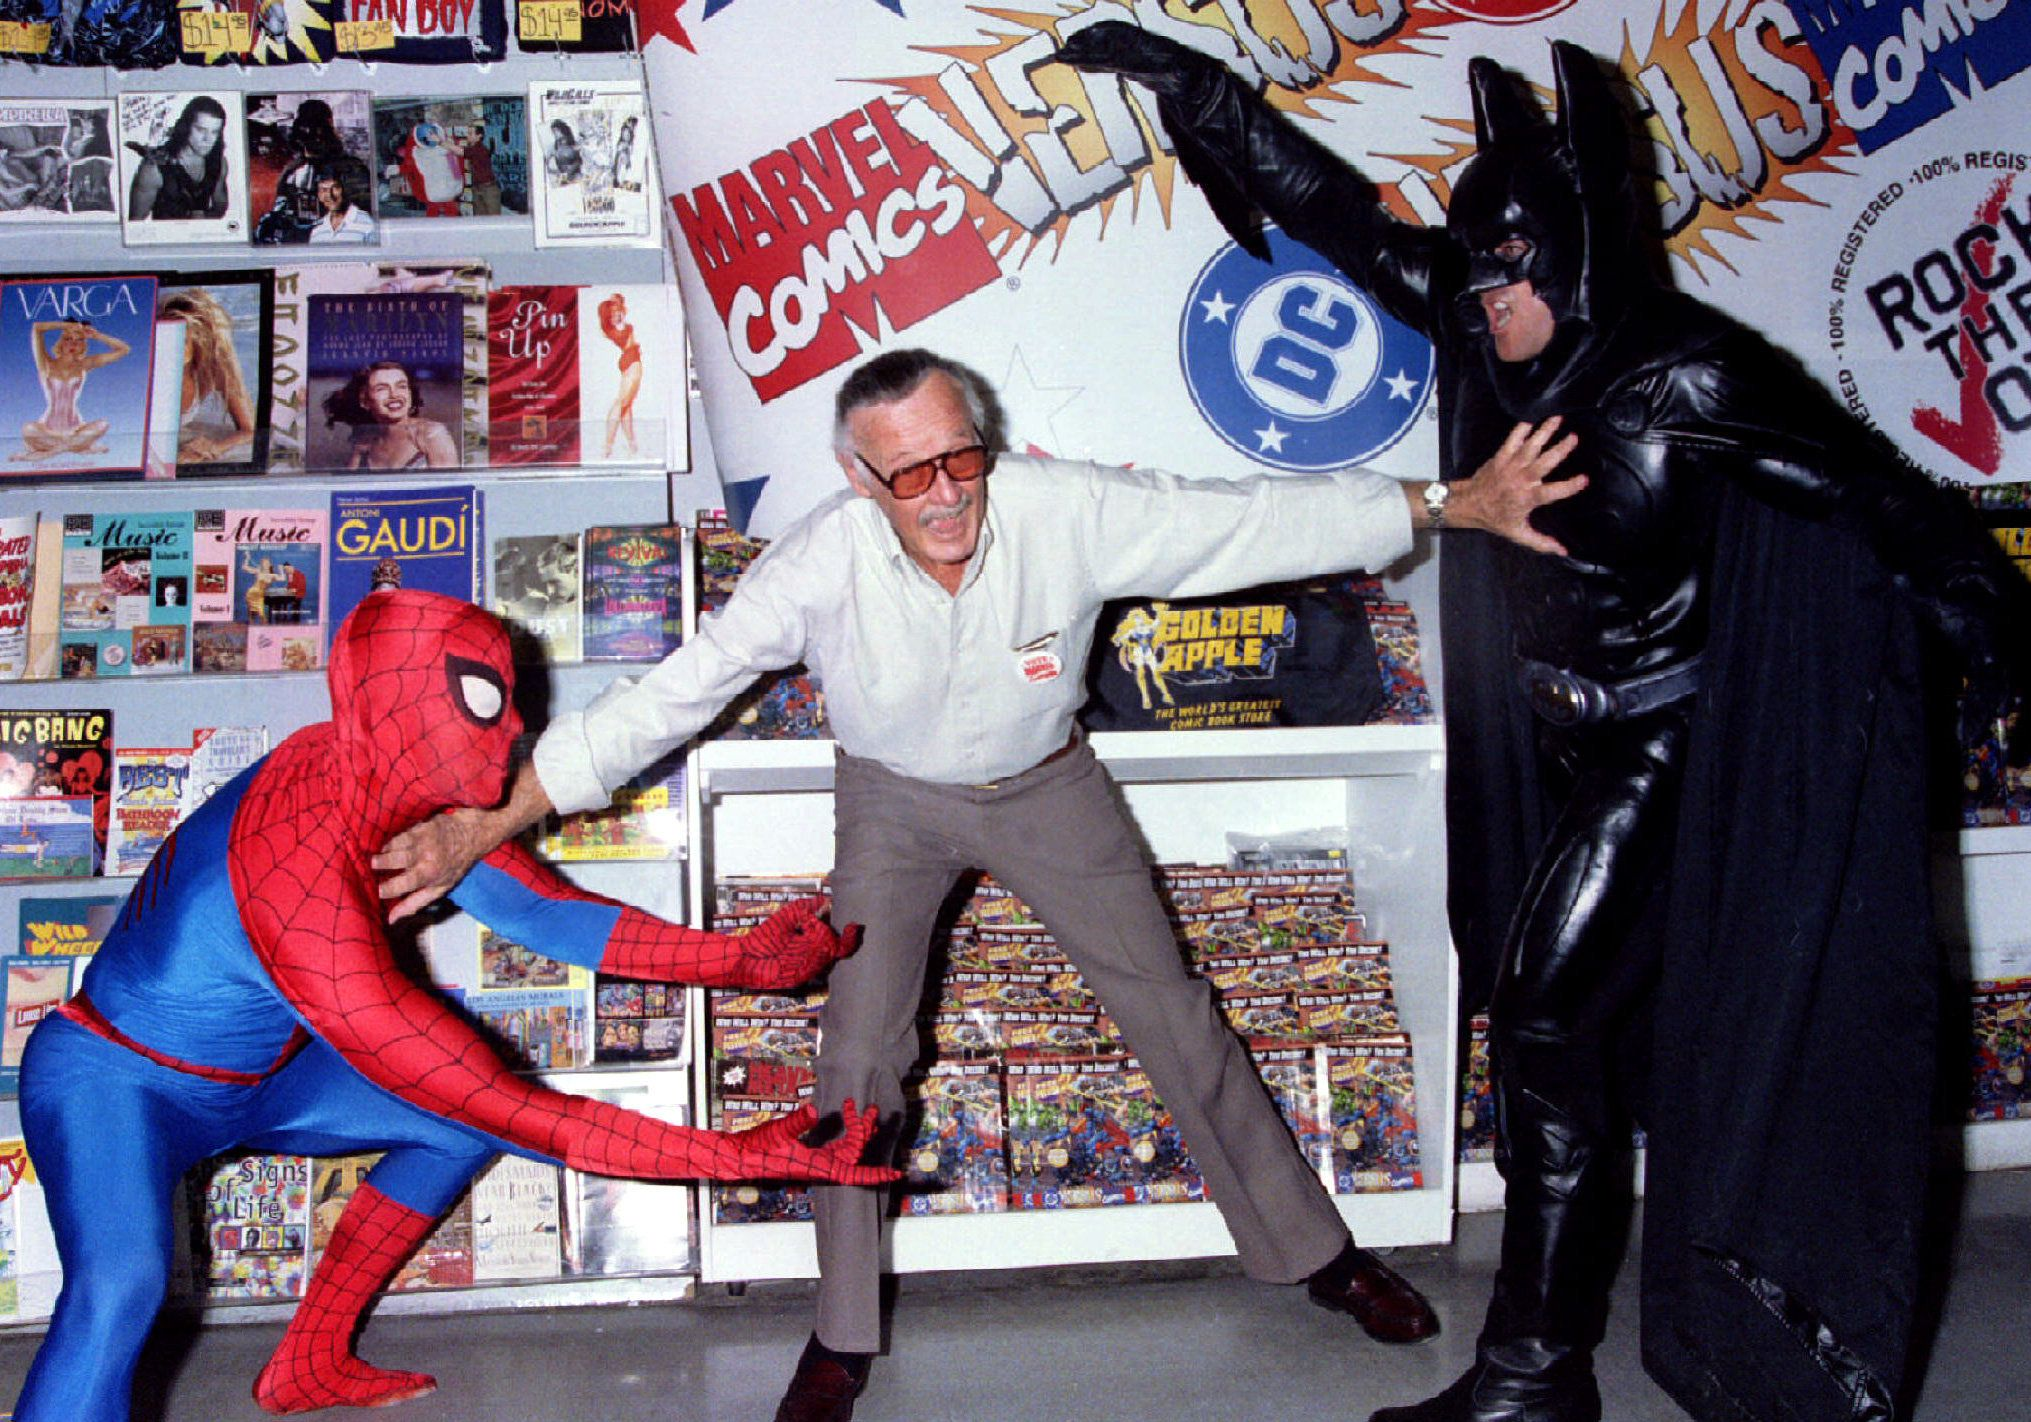 Stan Lee, comic book character creator for Marvel Comics, breaks up a fight between comic characters Spiderman (L) and Batman during a promotion November 8 at The Golden Apple comic book  store. The superheroes battle each other in a special comic book series issued  by DC and Marvel Comics